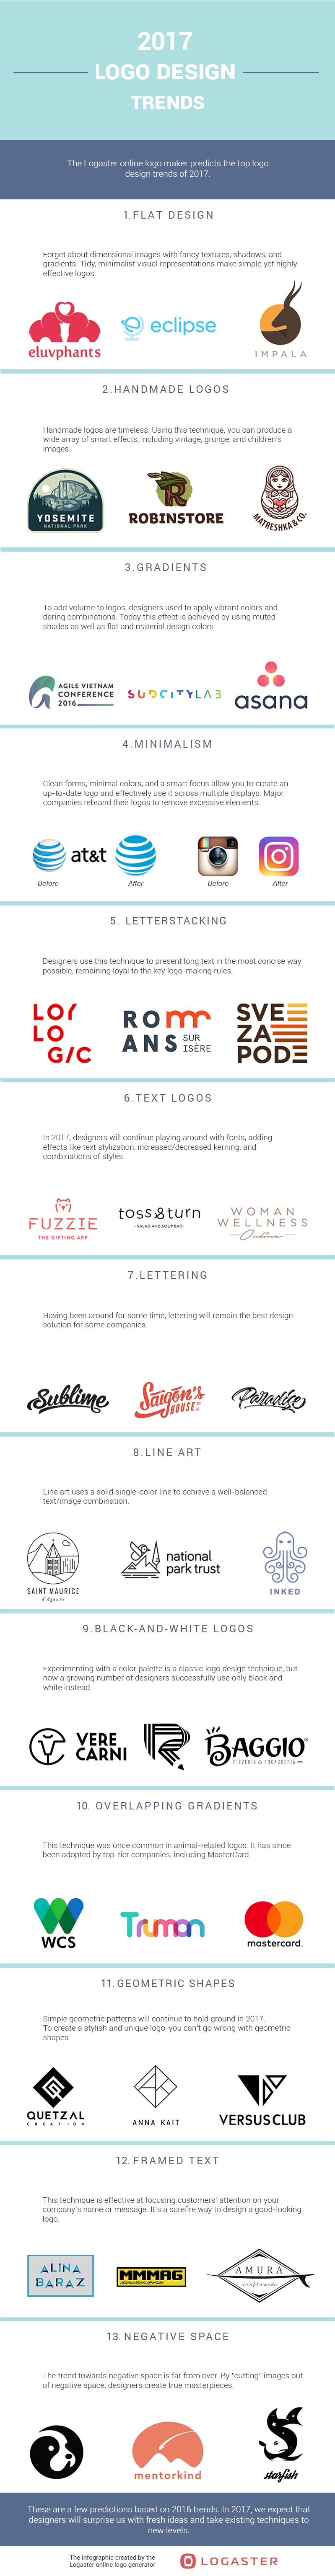 13 Logo Design Trends to Watch for in 2017 [Infographic]